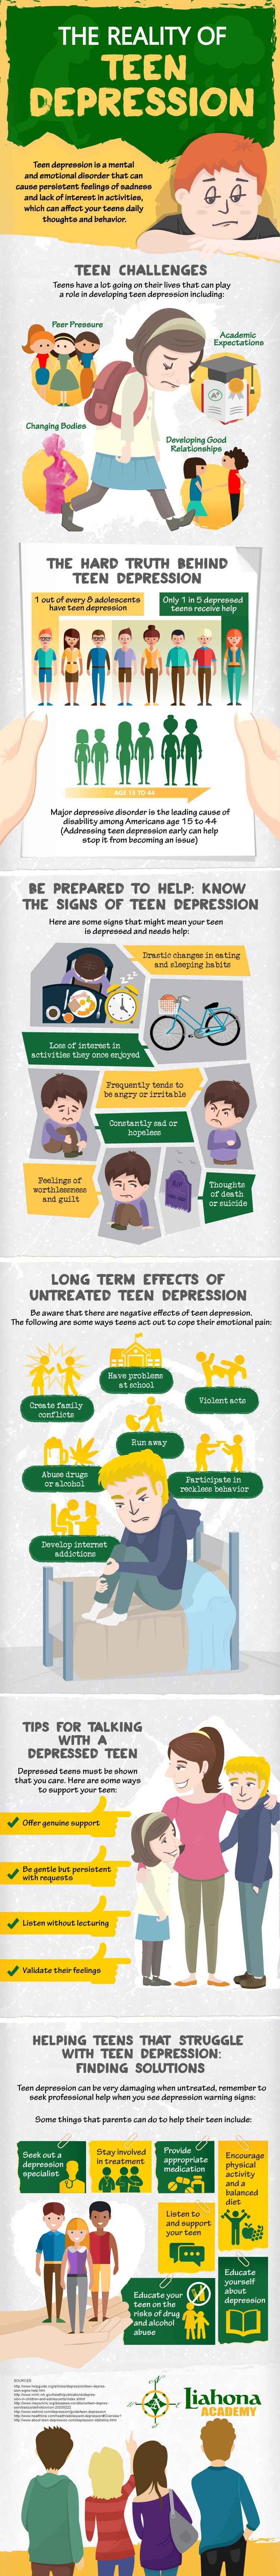 The-Reality-Of-Teen-Depression-Infographic